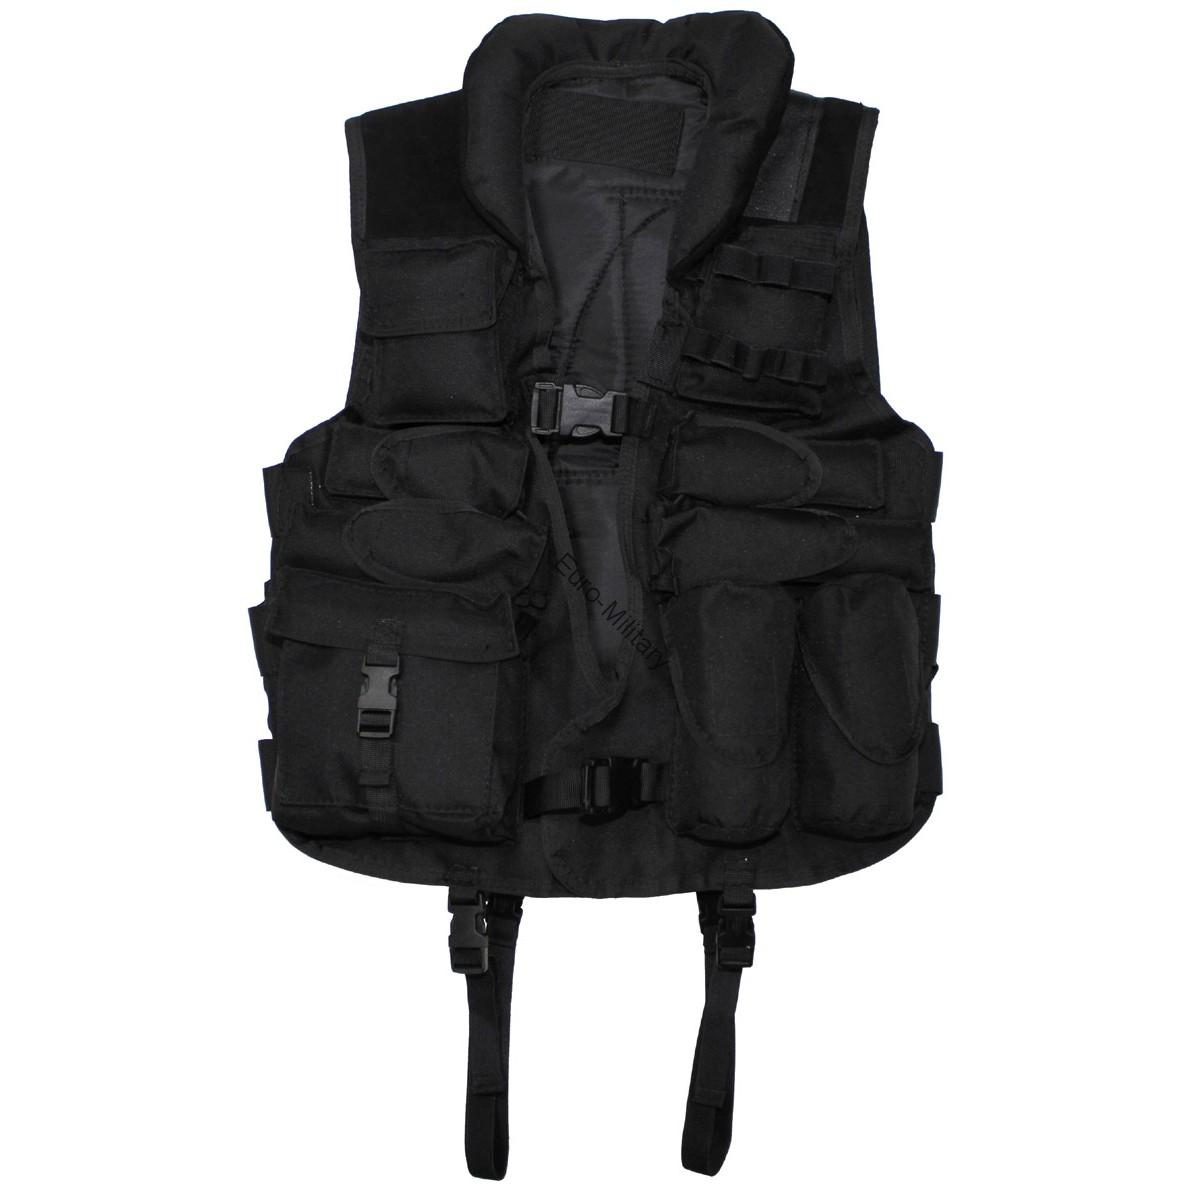 Tactical Army Vest with Leather - Black